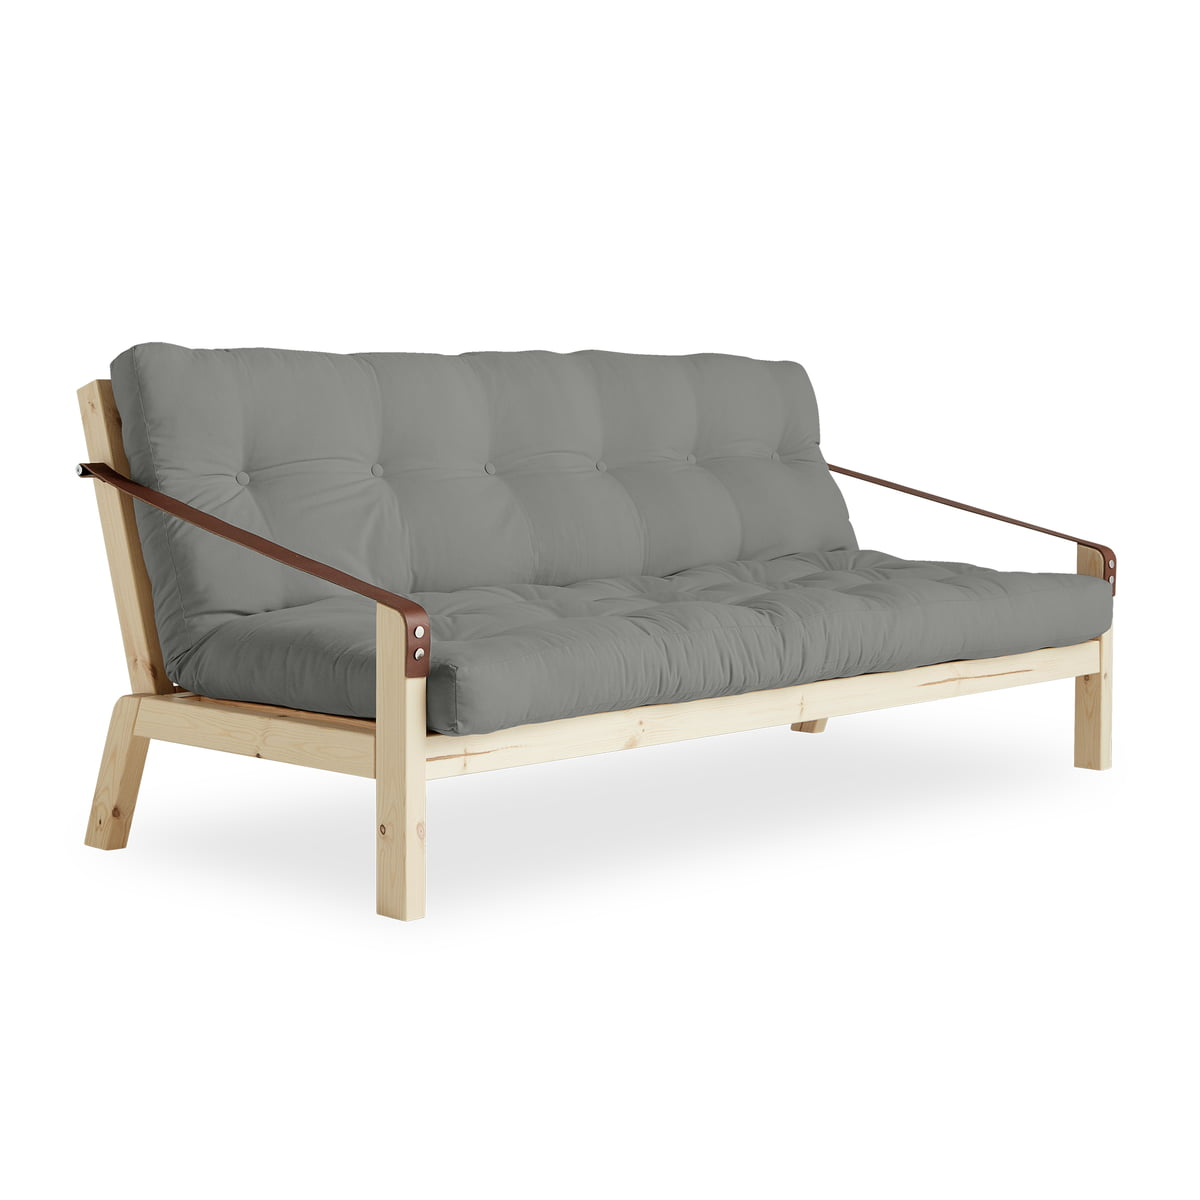 Lederen Design Slaapbank.Karup Design Poetry Sofa Grenen Naturel Grijs 746